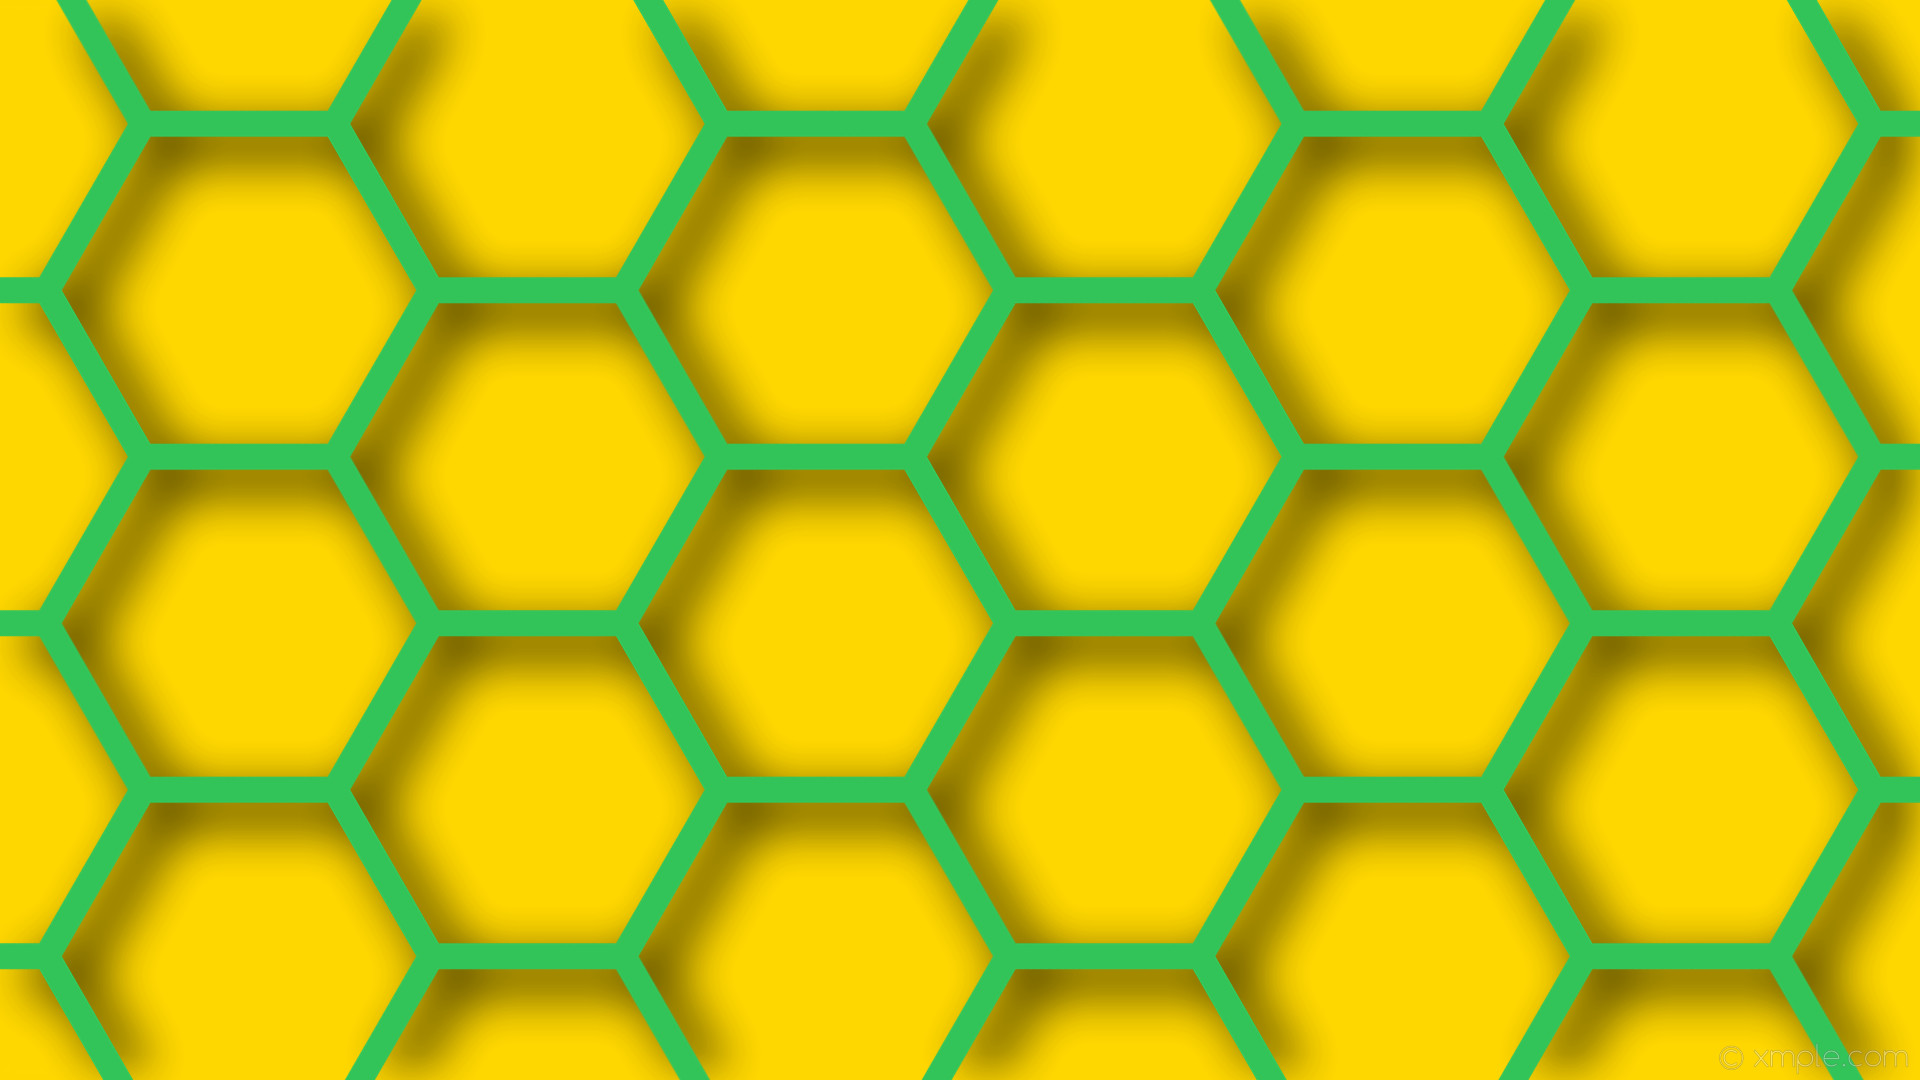 1920x1080 wallpaper hexagon turquoise beehive drop shadow yellow gold #32c359 #ffd700  120° 26px 333px